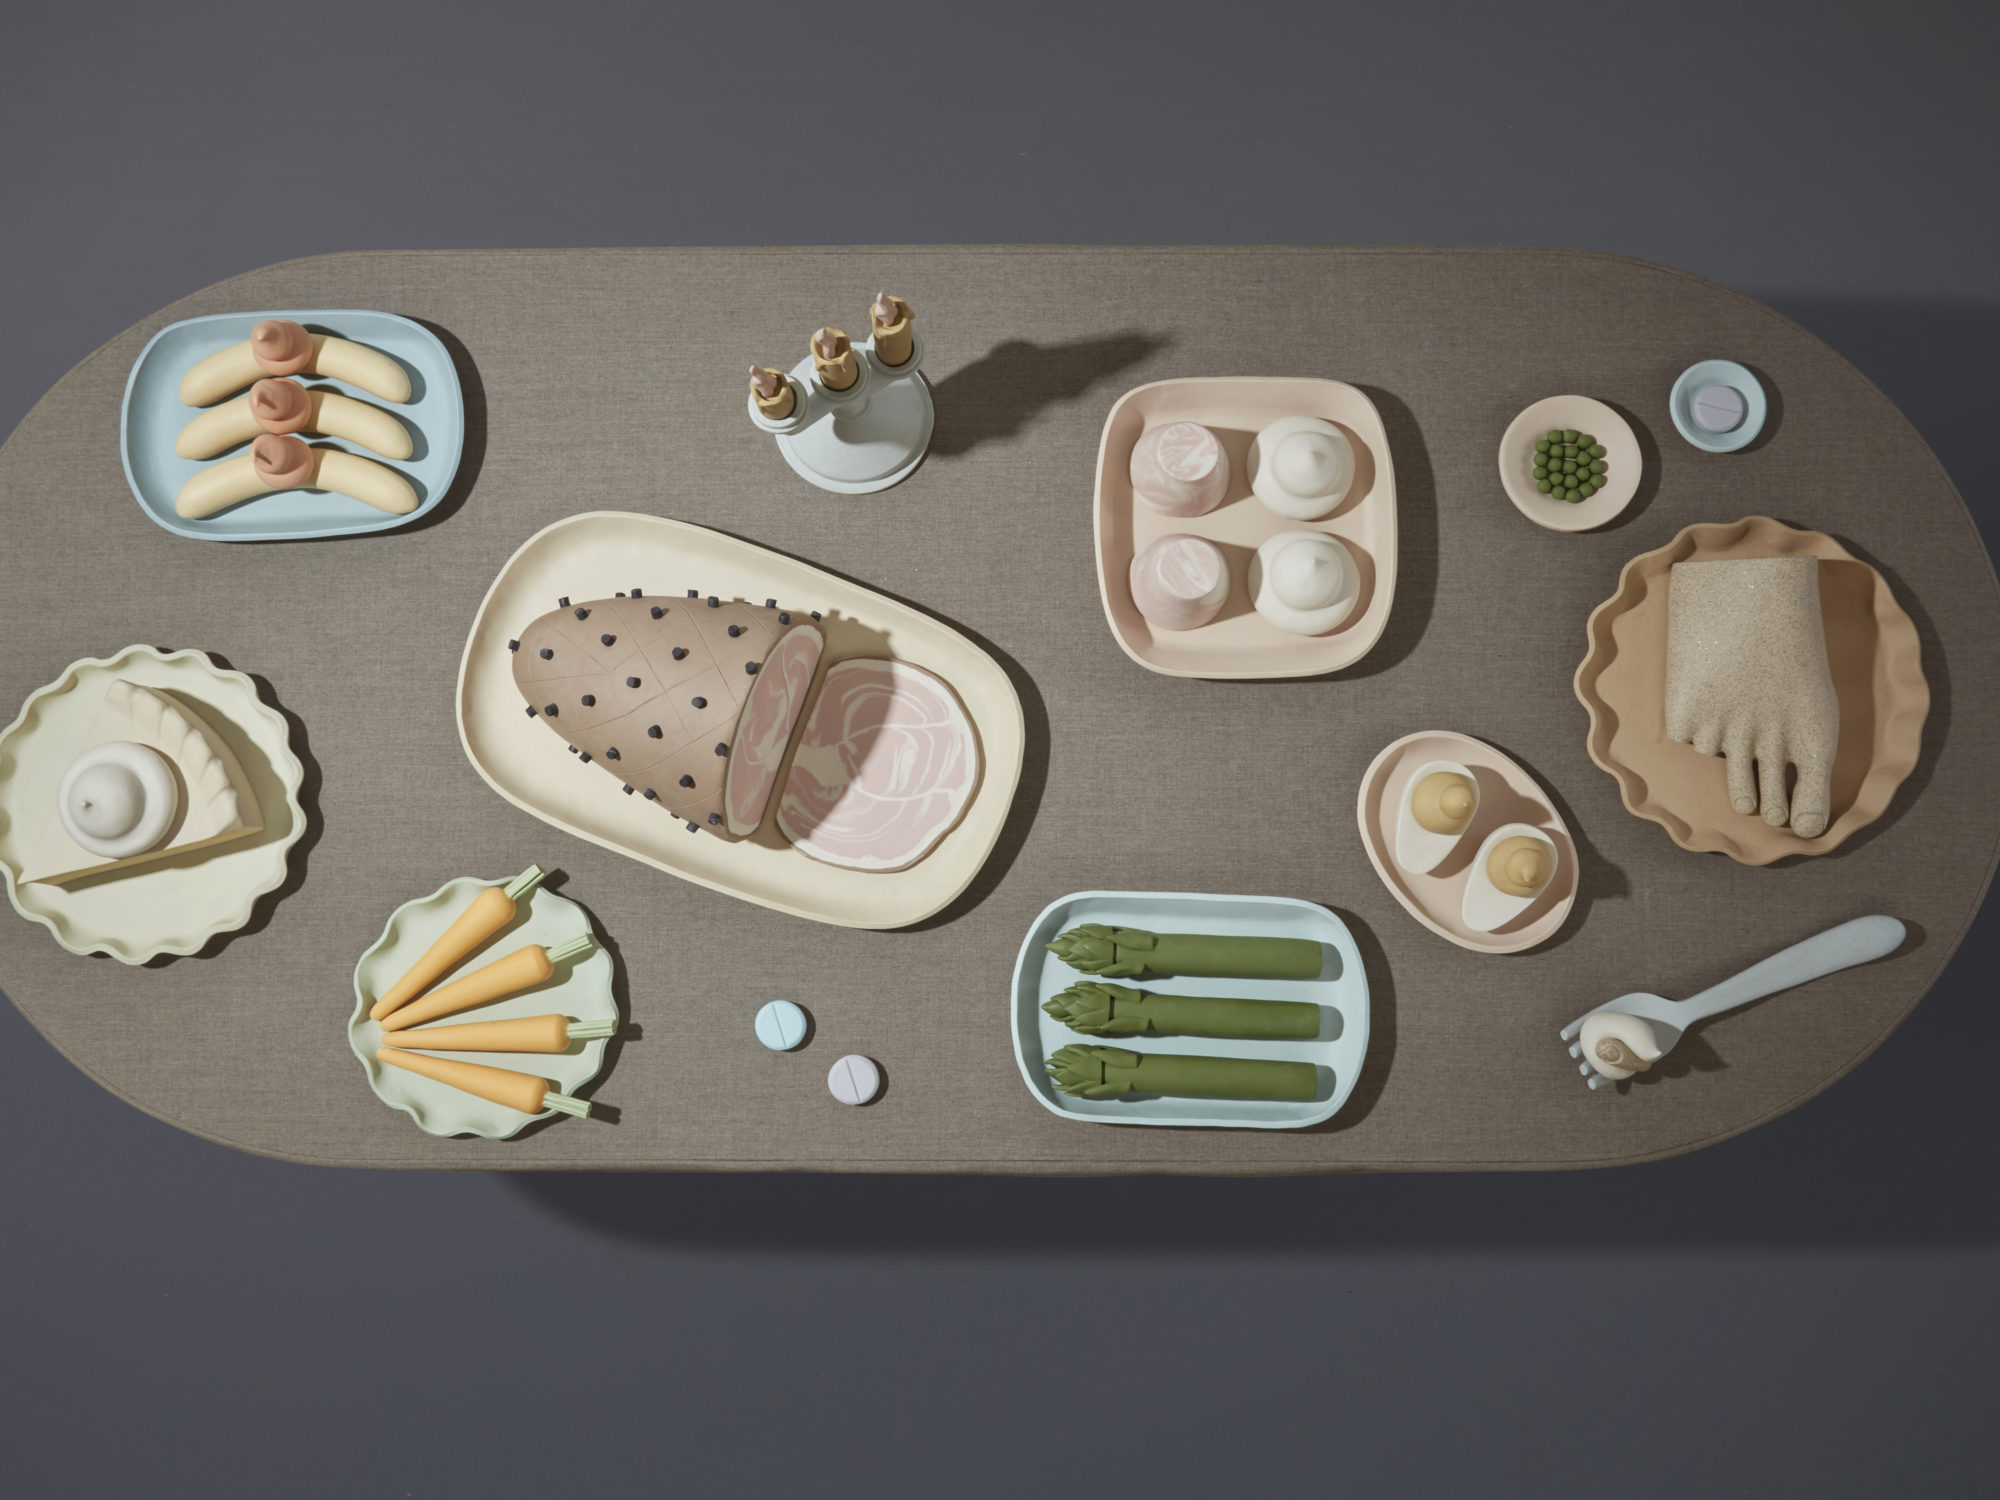 Birds eye view of sculptural objects arranged on a gray table